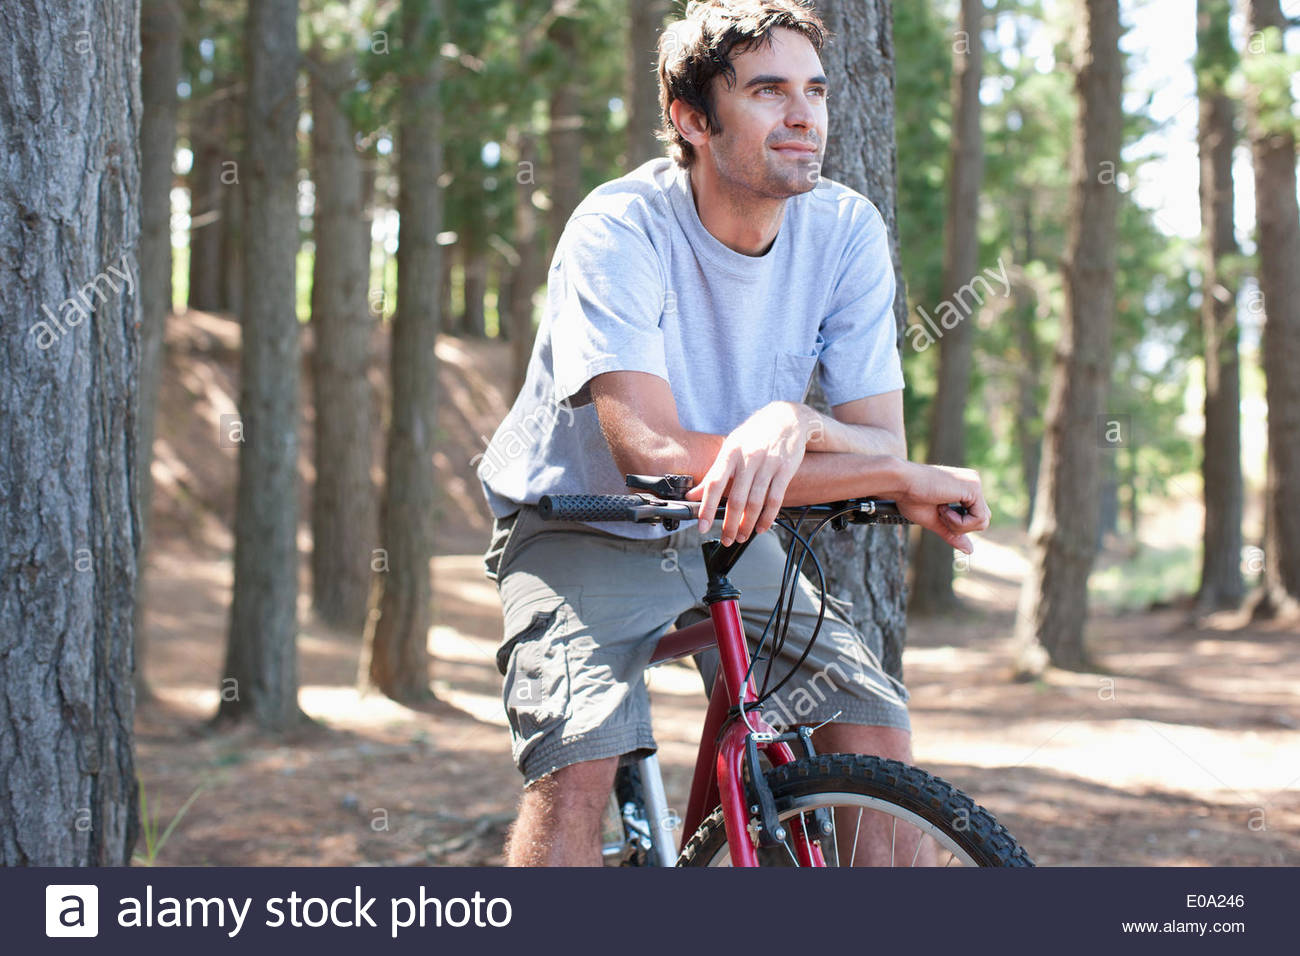 bicycle rider relaxing in forest - Stock Image